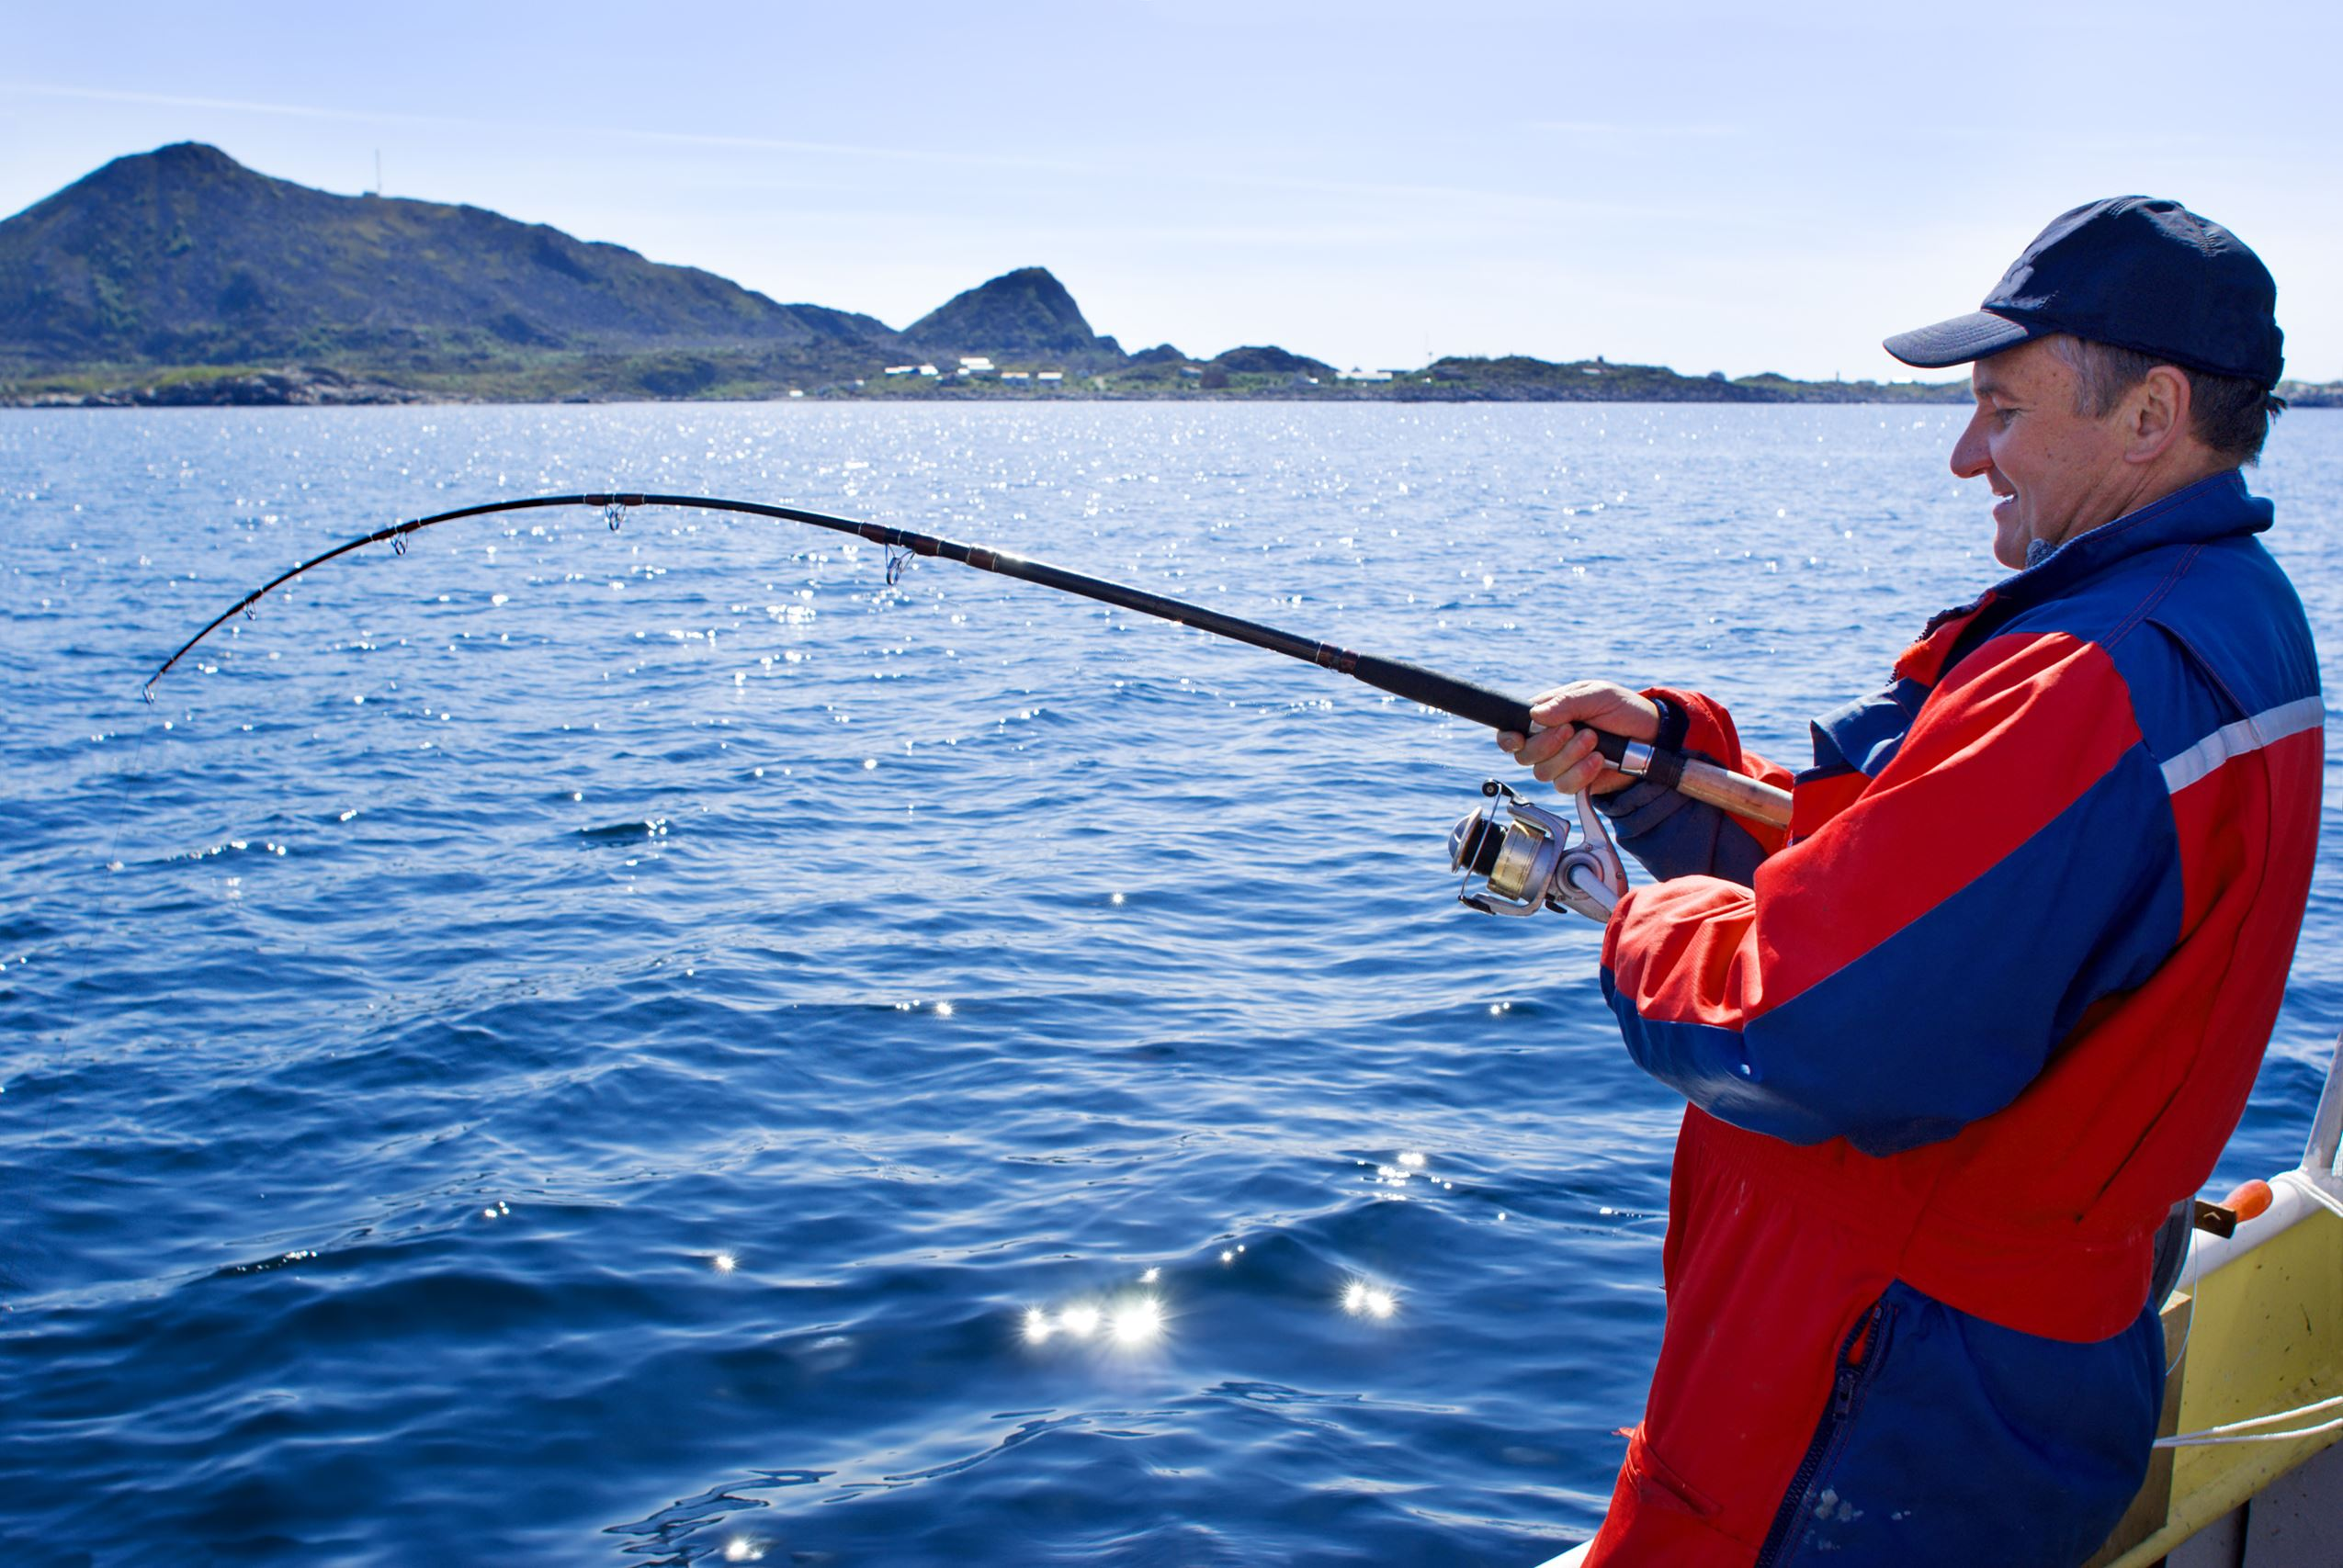 Sea fishing from the shore - at the edge of Tromsø